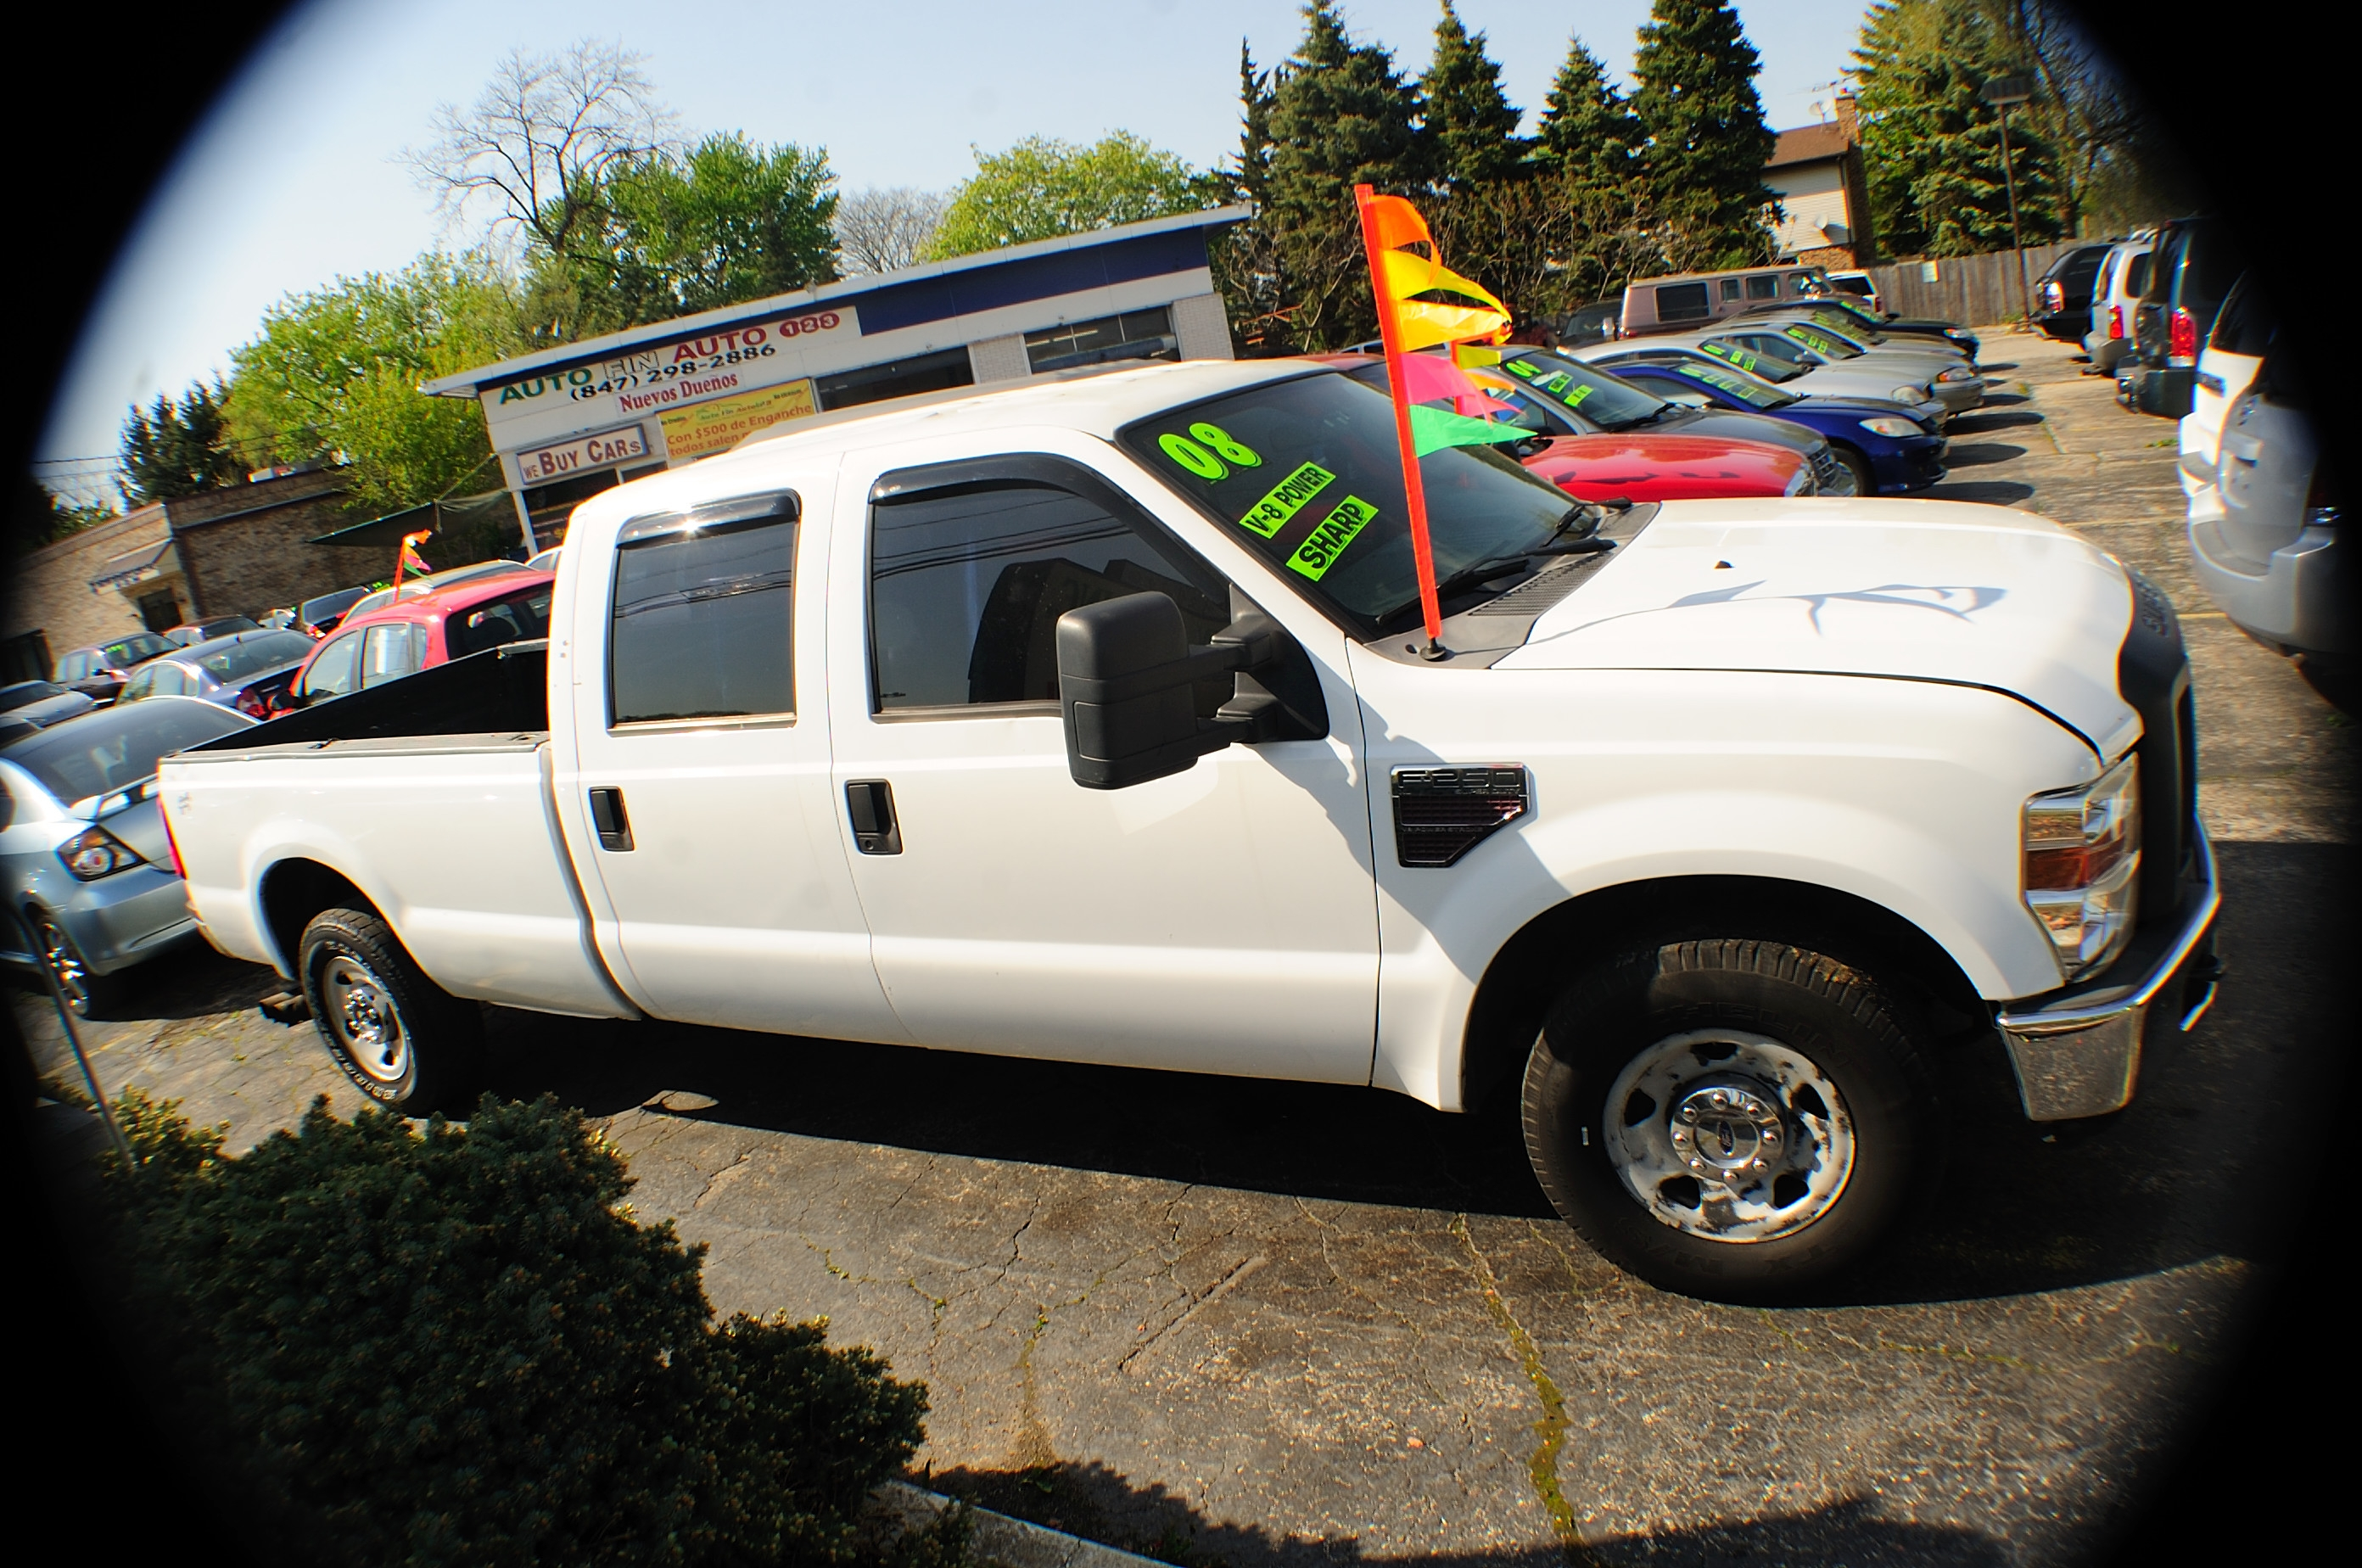 2008 Ford F250 White Crew 4x2 Diesel Truck sale Addison Algonquin Arlington Heights Bartlett